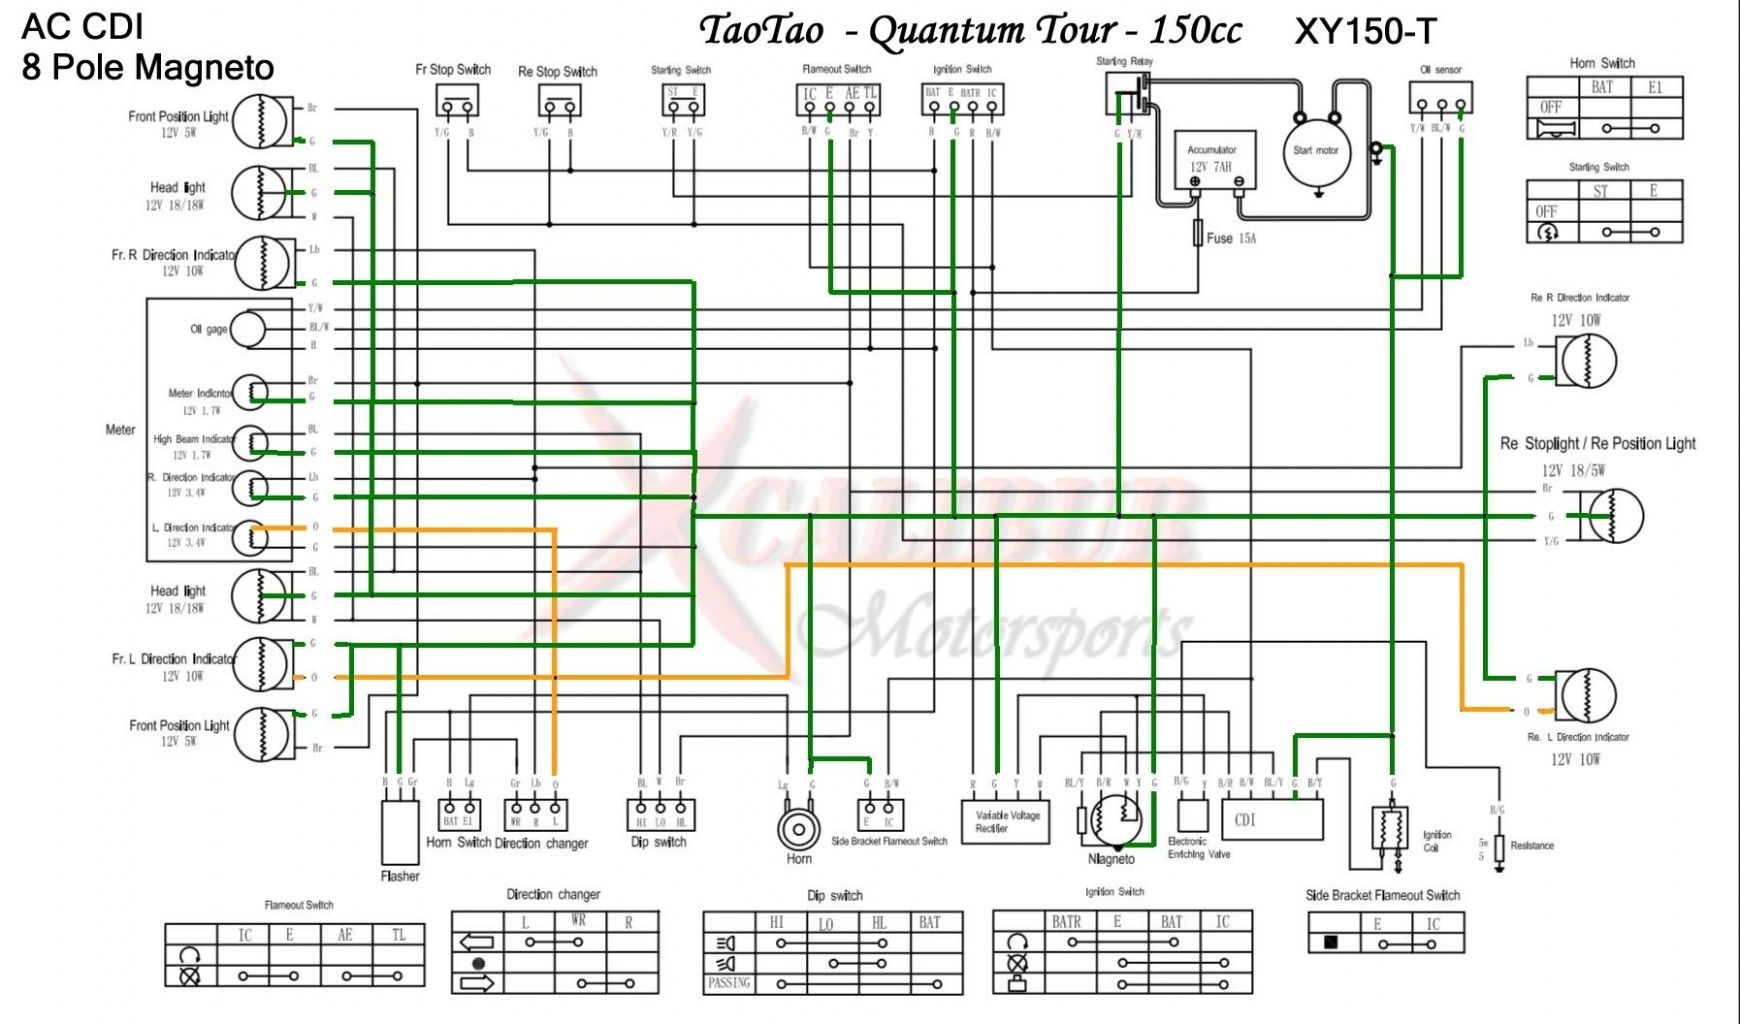 Gy7 7cc Engine Diagram Indonesia | Chinese scooters, Diagram, 150cc | 2004 50cc Scooter Wiring Diagram |  | Pinterest